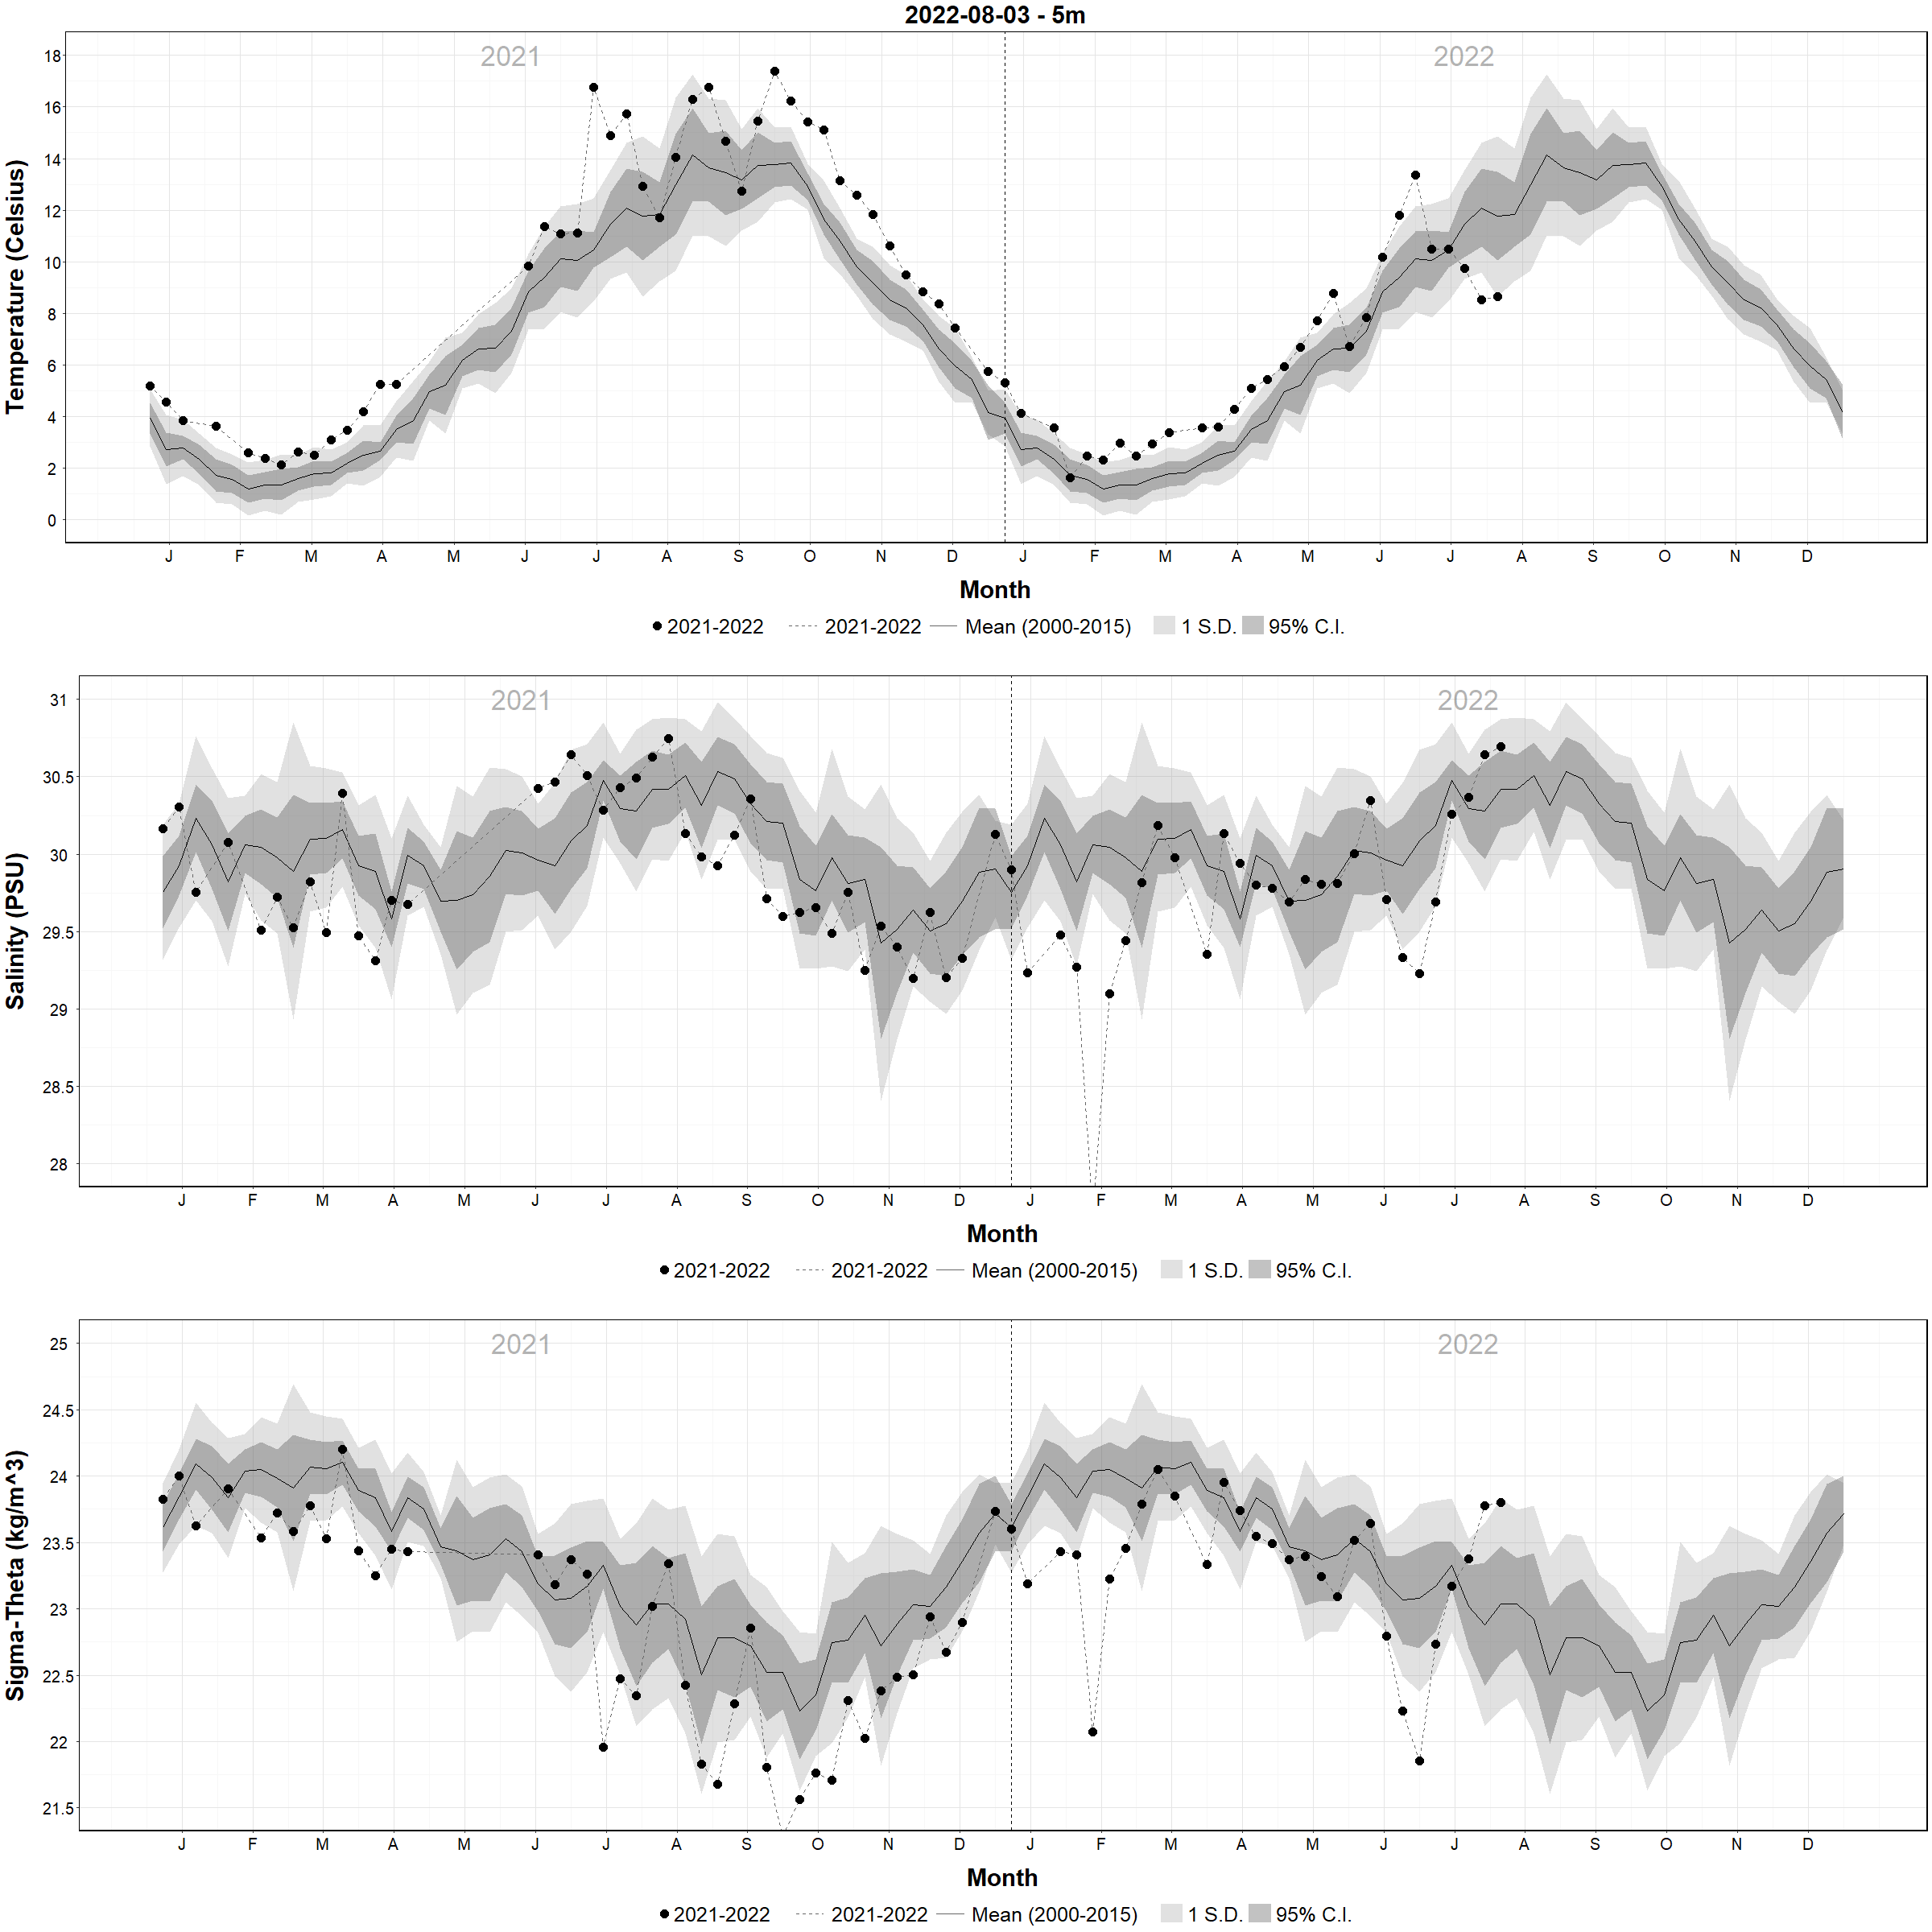 Weekly Temperature and Salinity Plots Versus Climatology - 5m